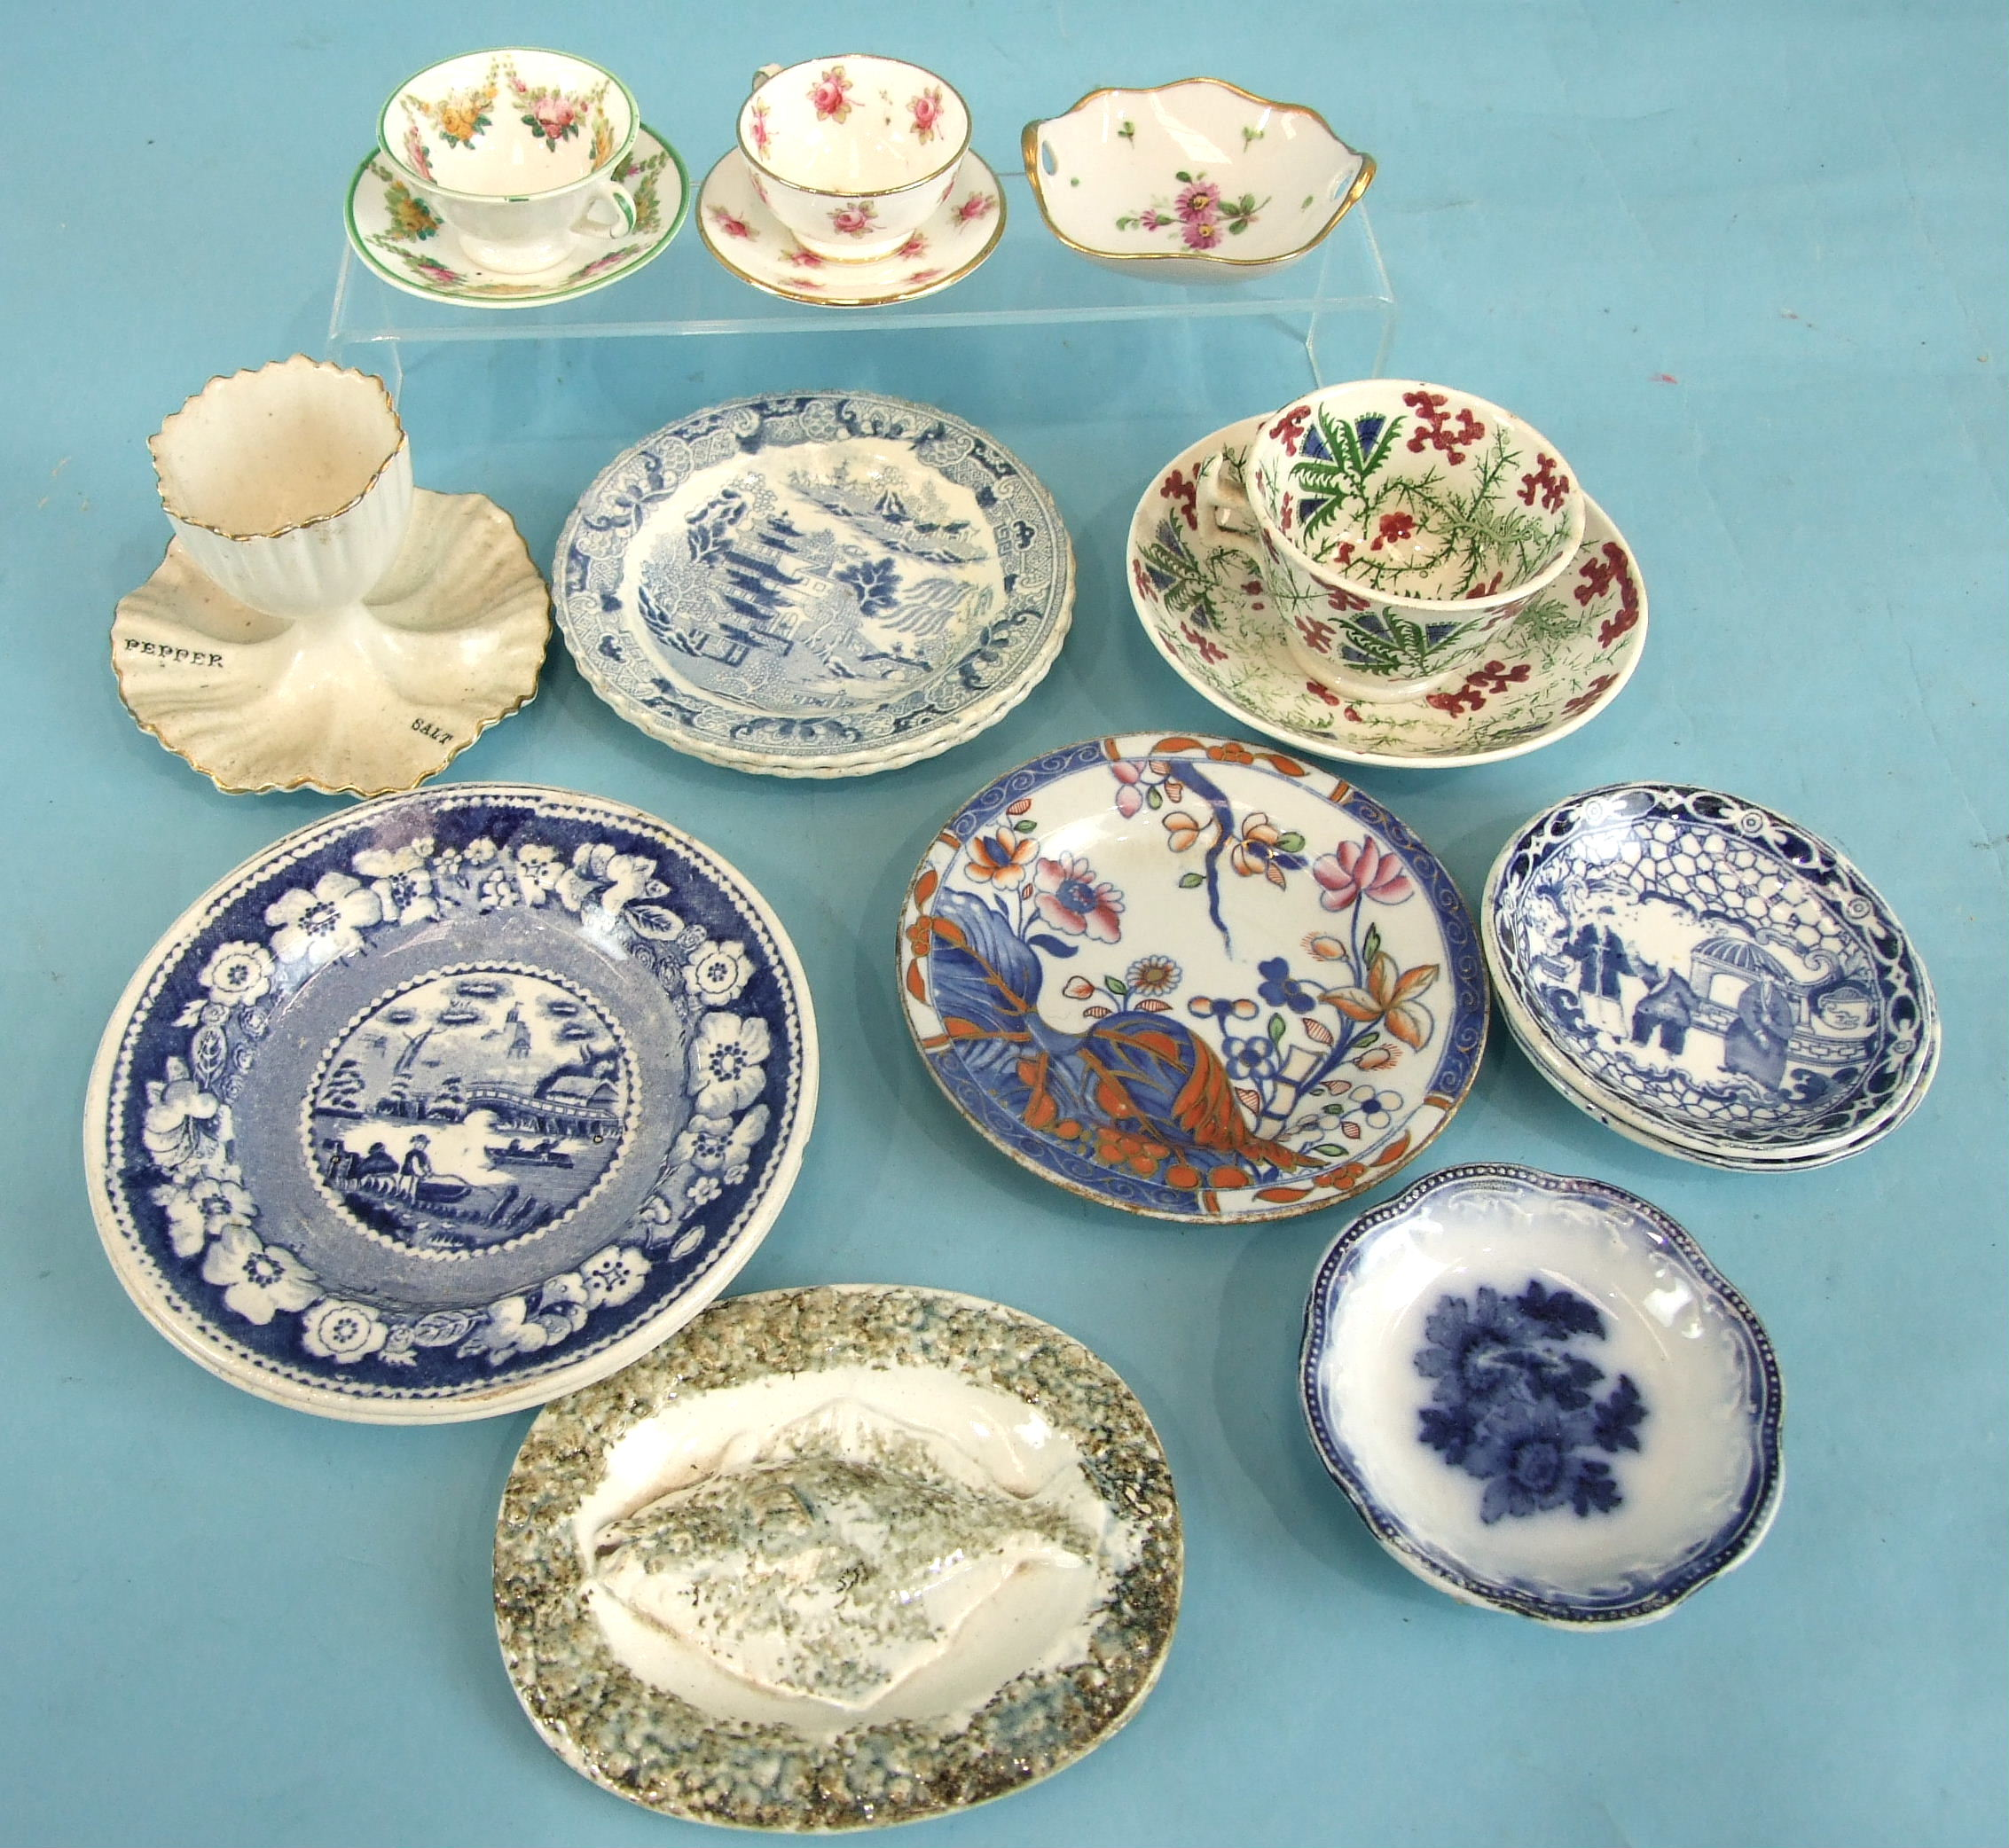 Lot 86 - A group of child's plates with willow pattern and other printed decoration, also an egg cup, etc.